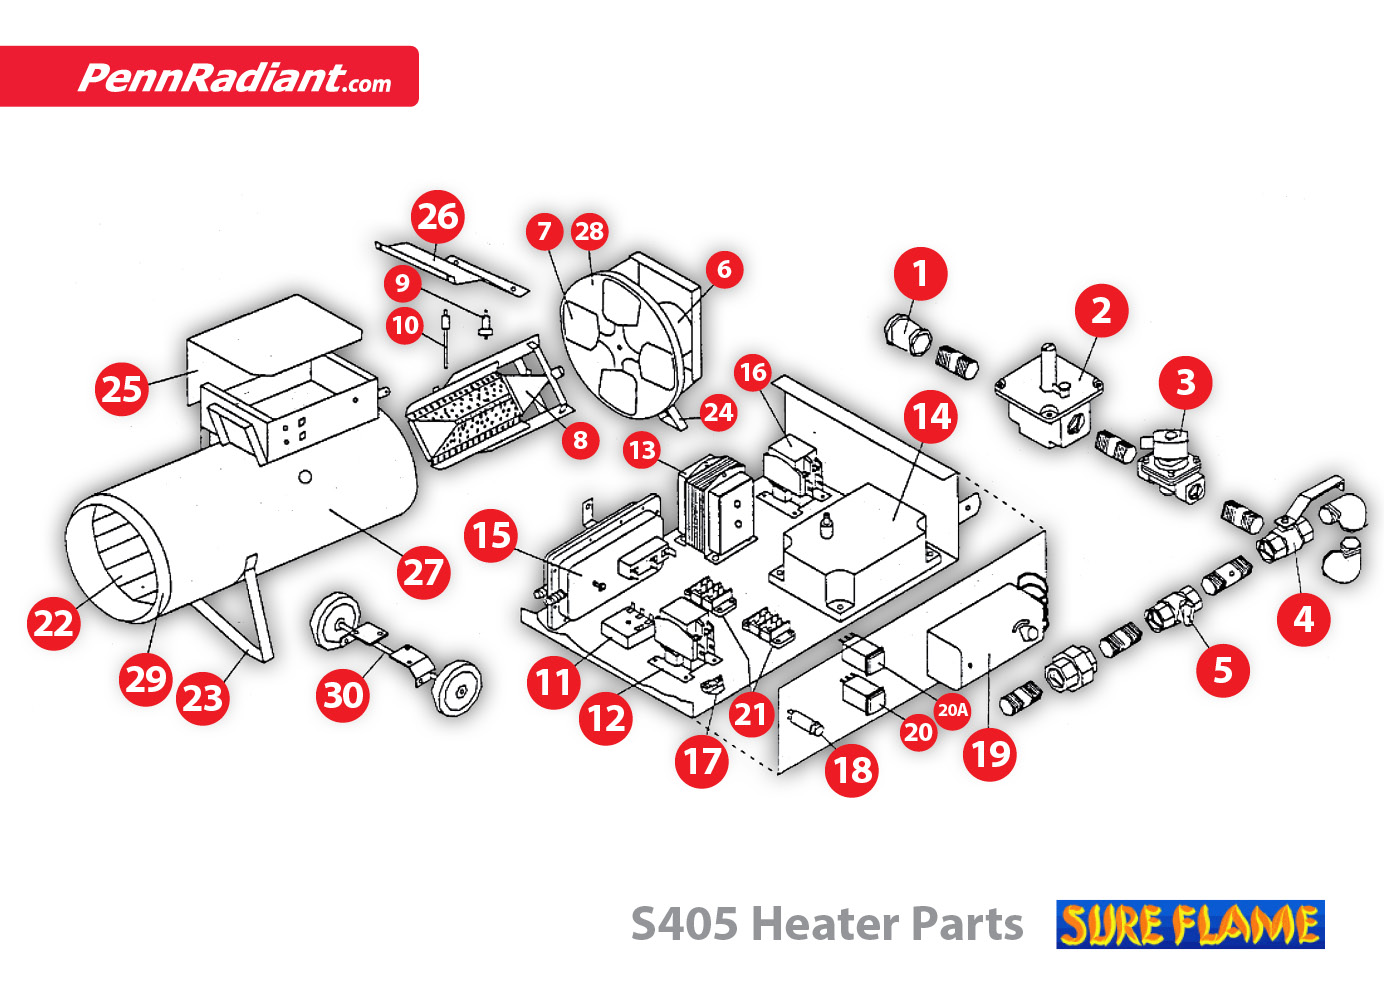 Radiant Heat Parts Big Buddy Heater Wiring Diagram Pictures Of